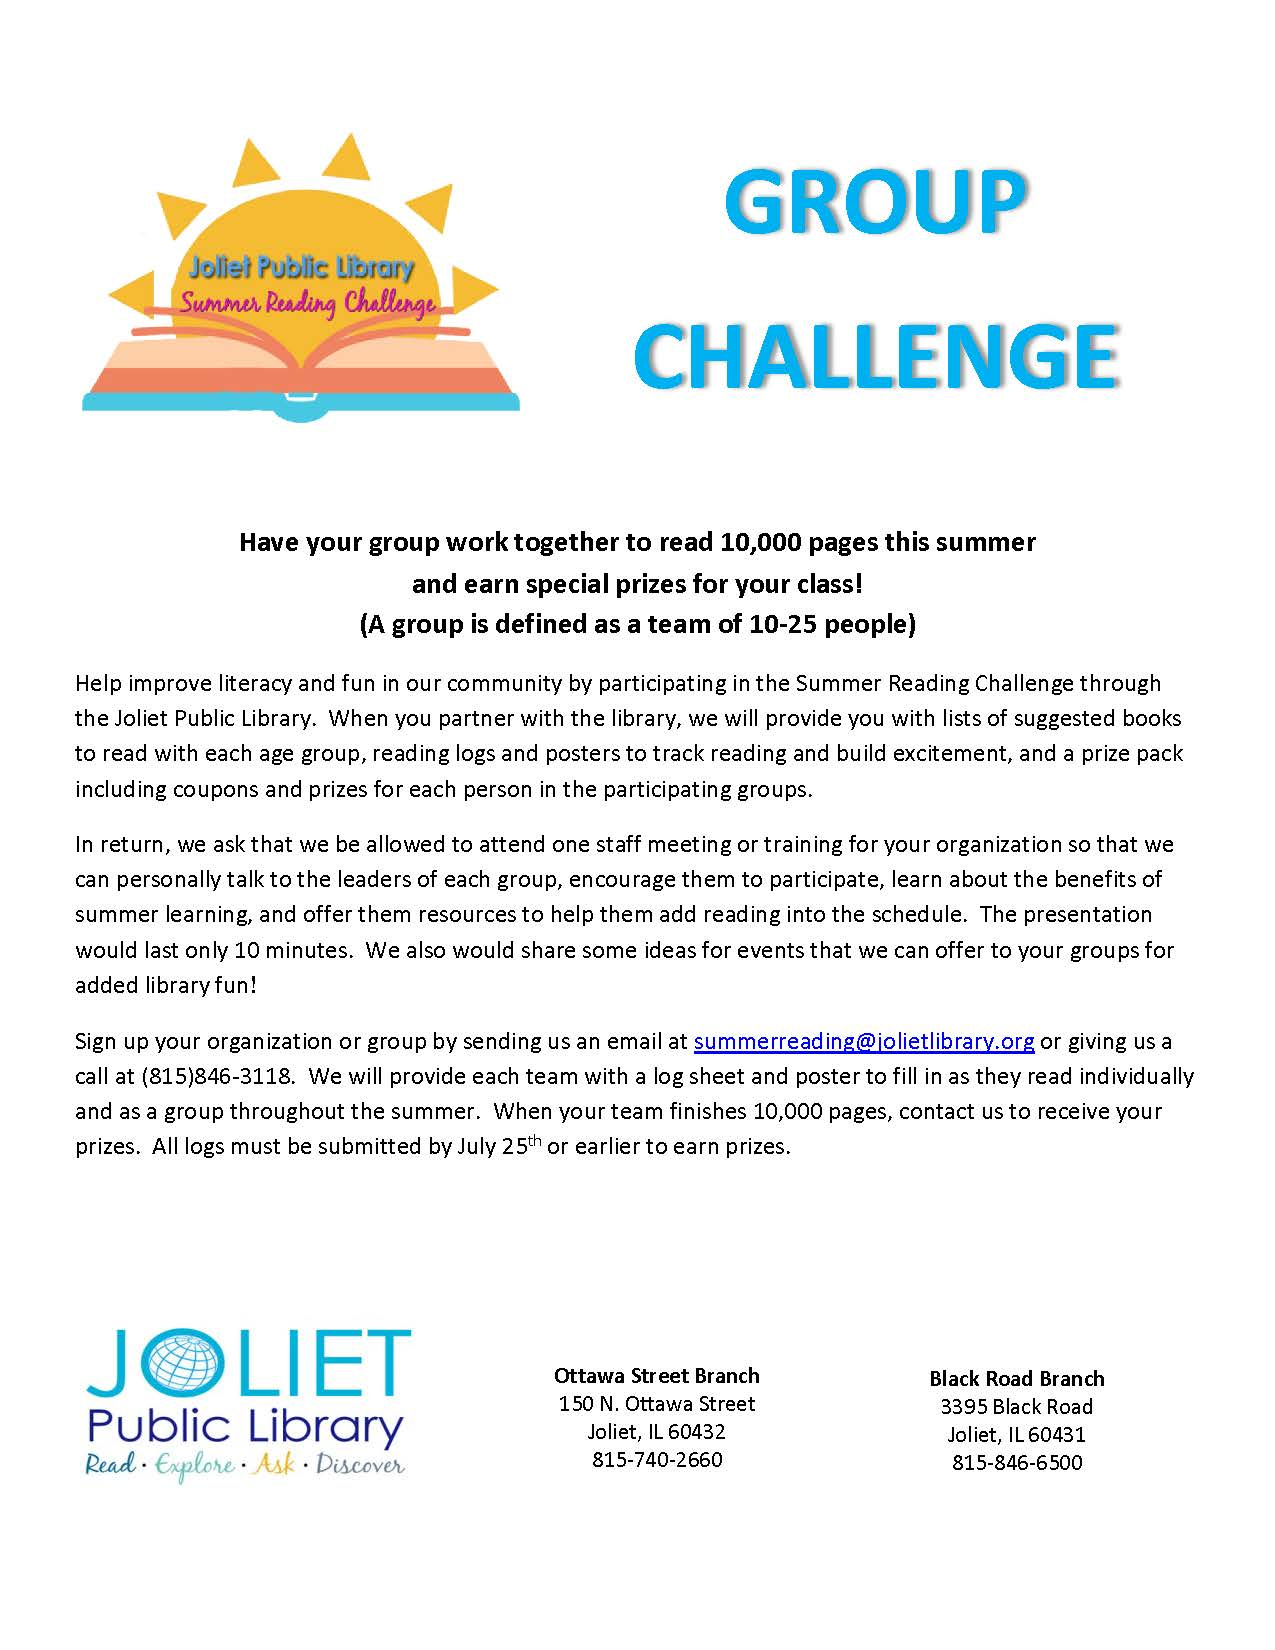 Group Challenge Information